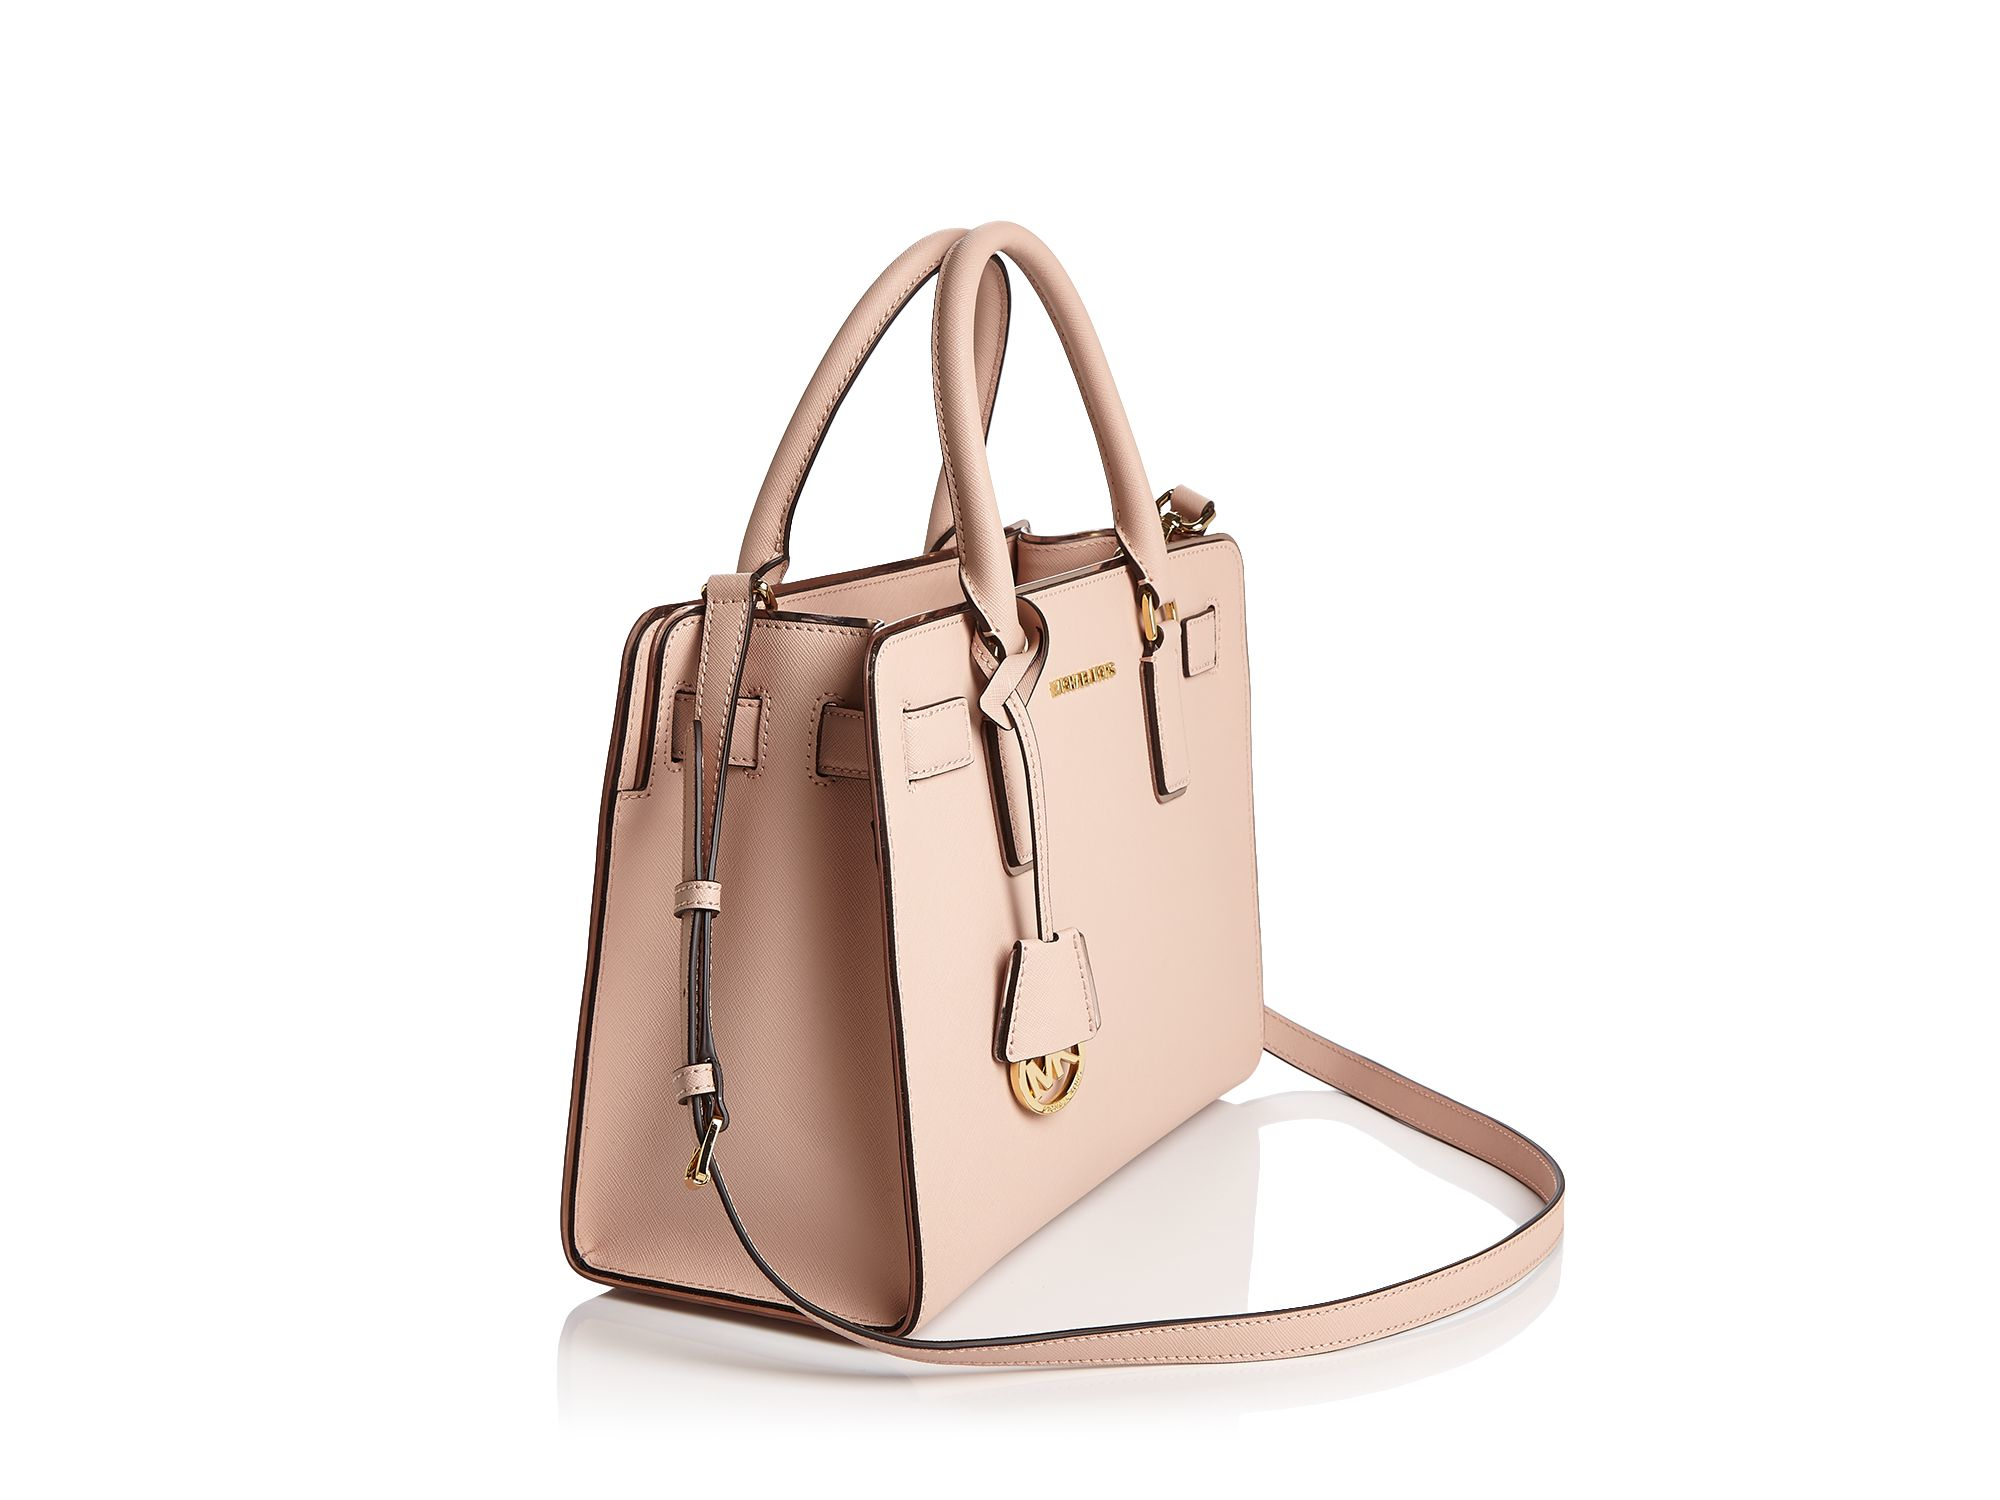 33be03169c63 MICHAEL Michael Kors Dillon Saffiano-Leather Satchel in Pink - Lyst